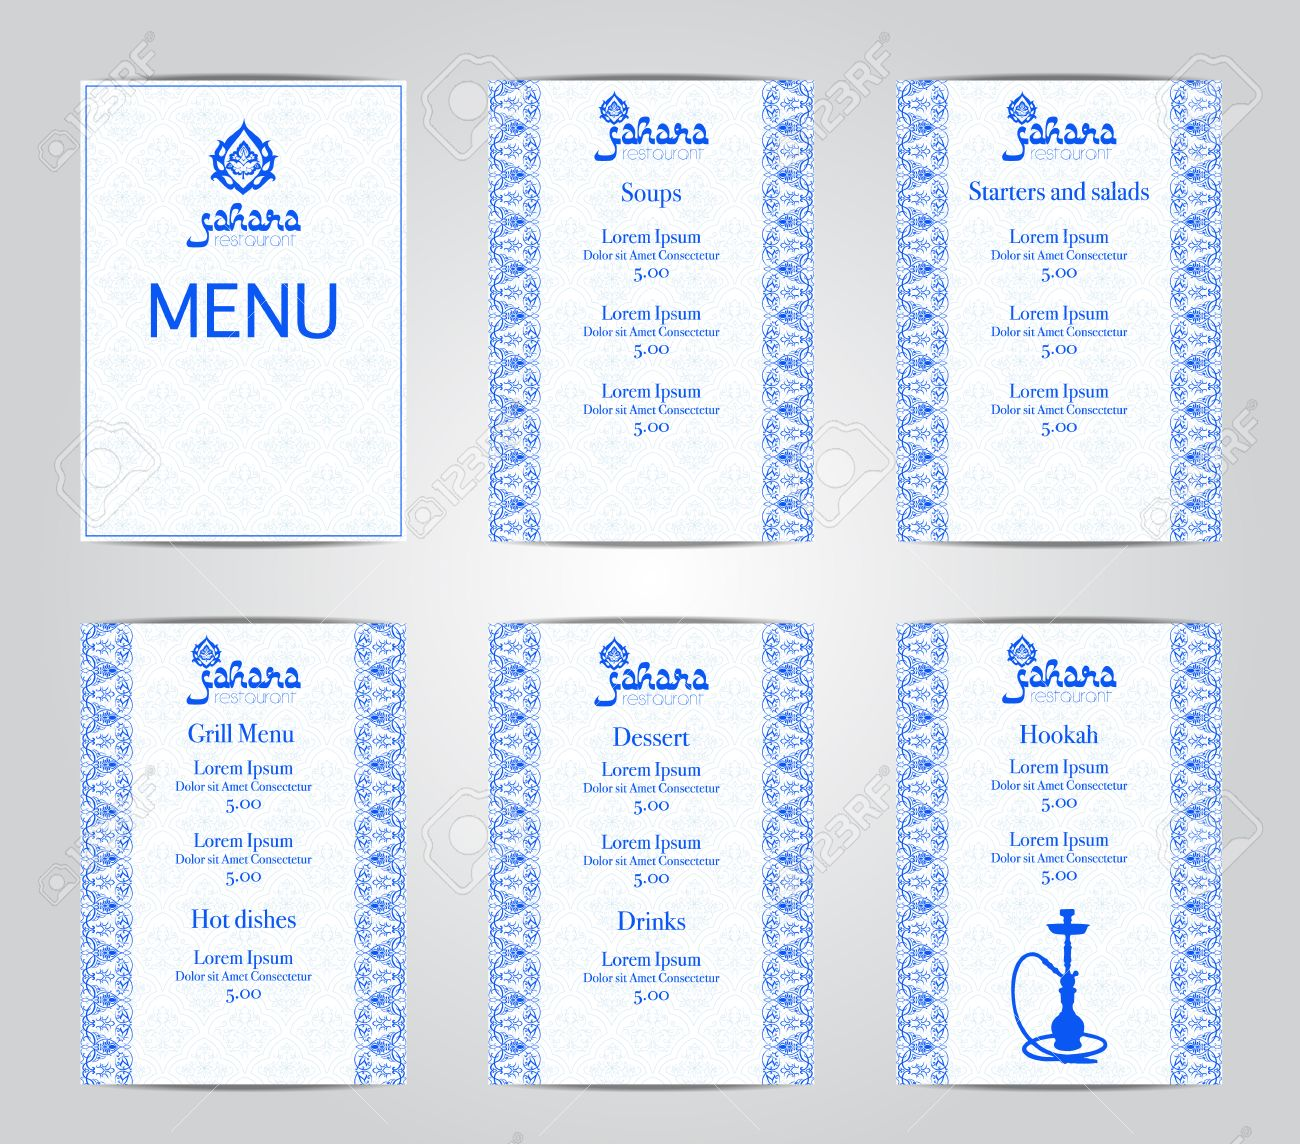 Vector Illustration Of A Menu Card Template Design For A Restaurant Royalty Free Cliparts Vectors And Stock Illustration Image 60242425